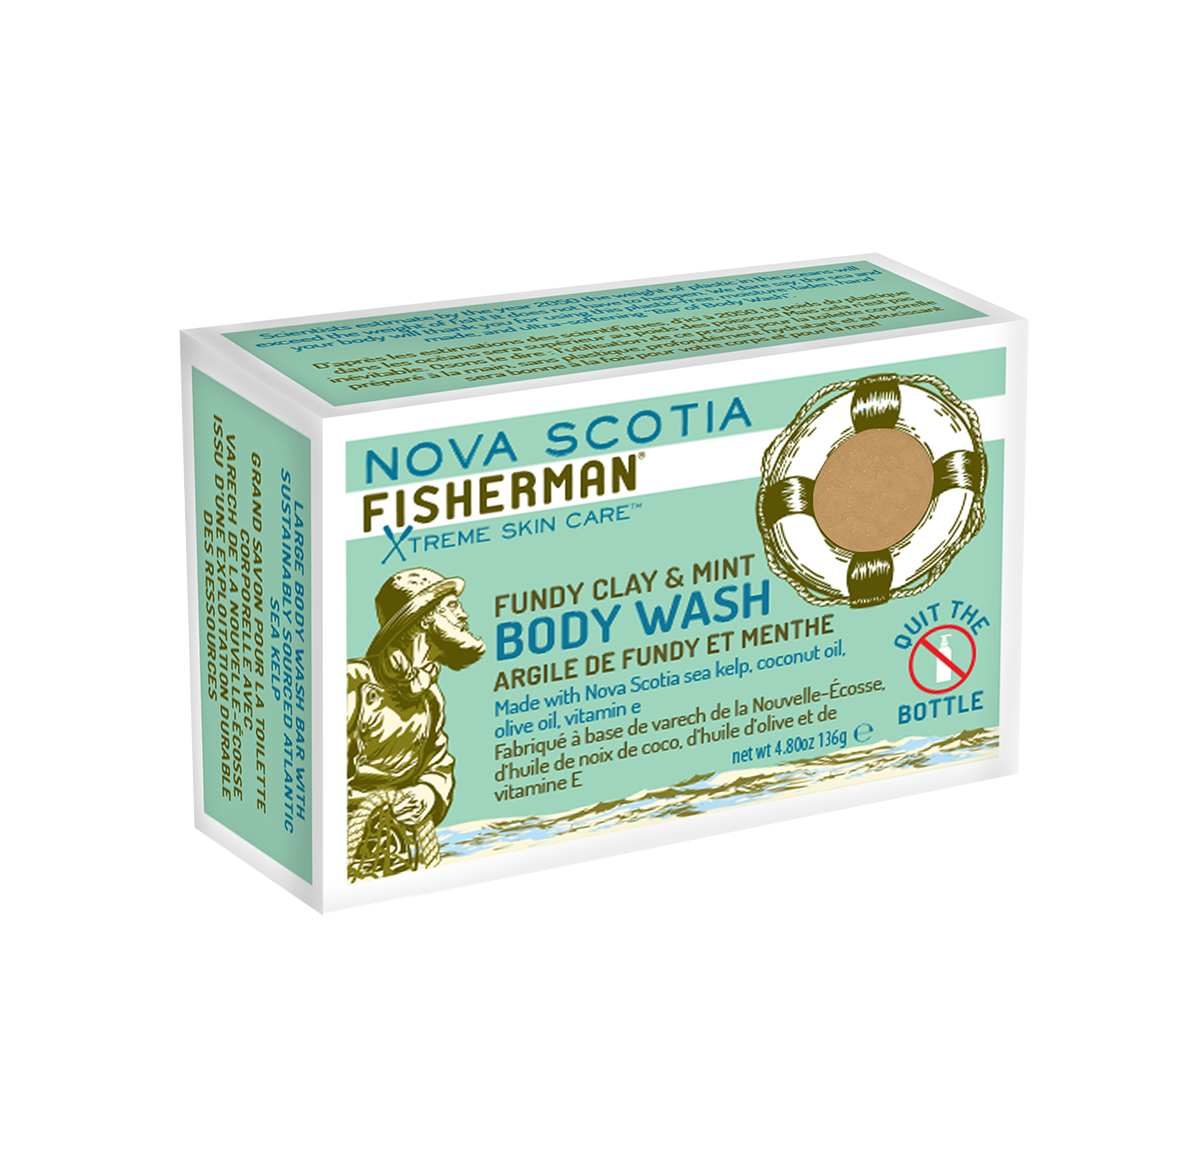 New! Body Wash Bar - Fundy Clay & Mint - Nova Scotia Fisherman Sea Kelp Skincare